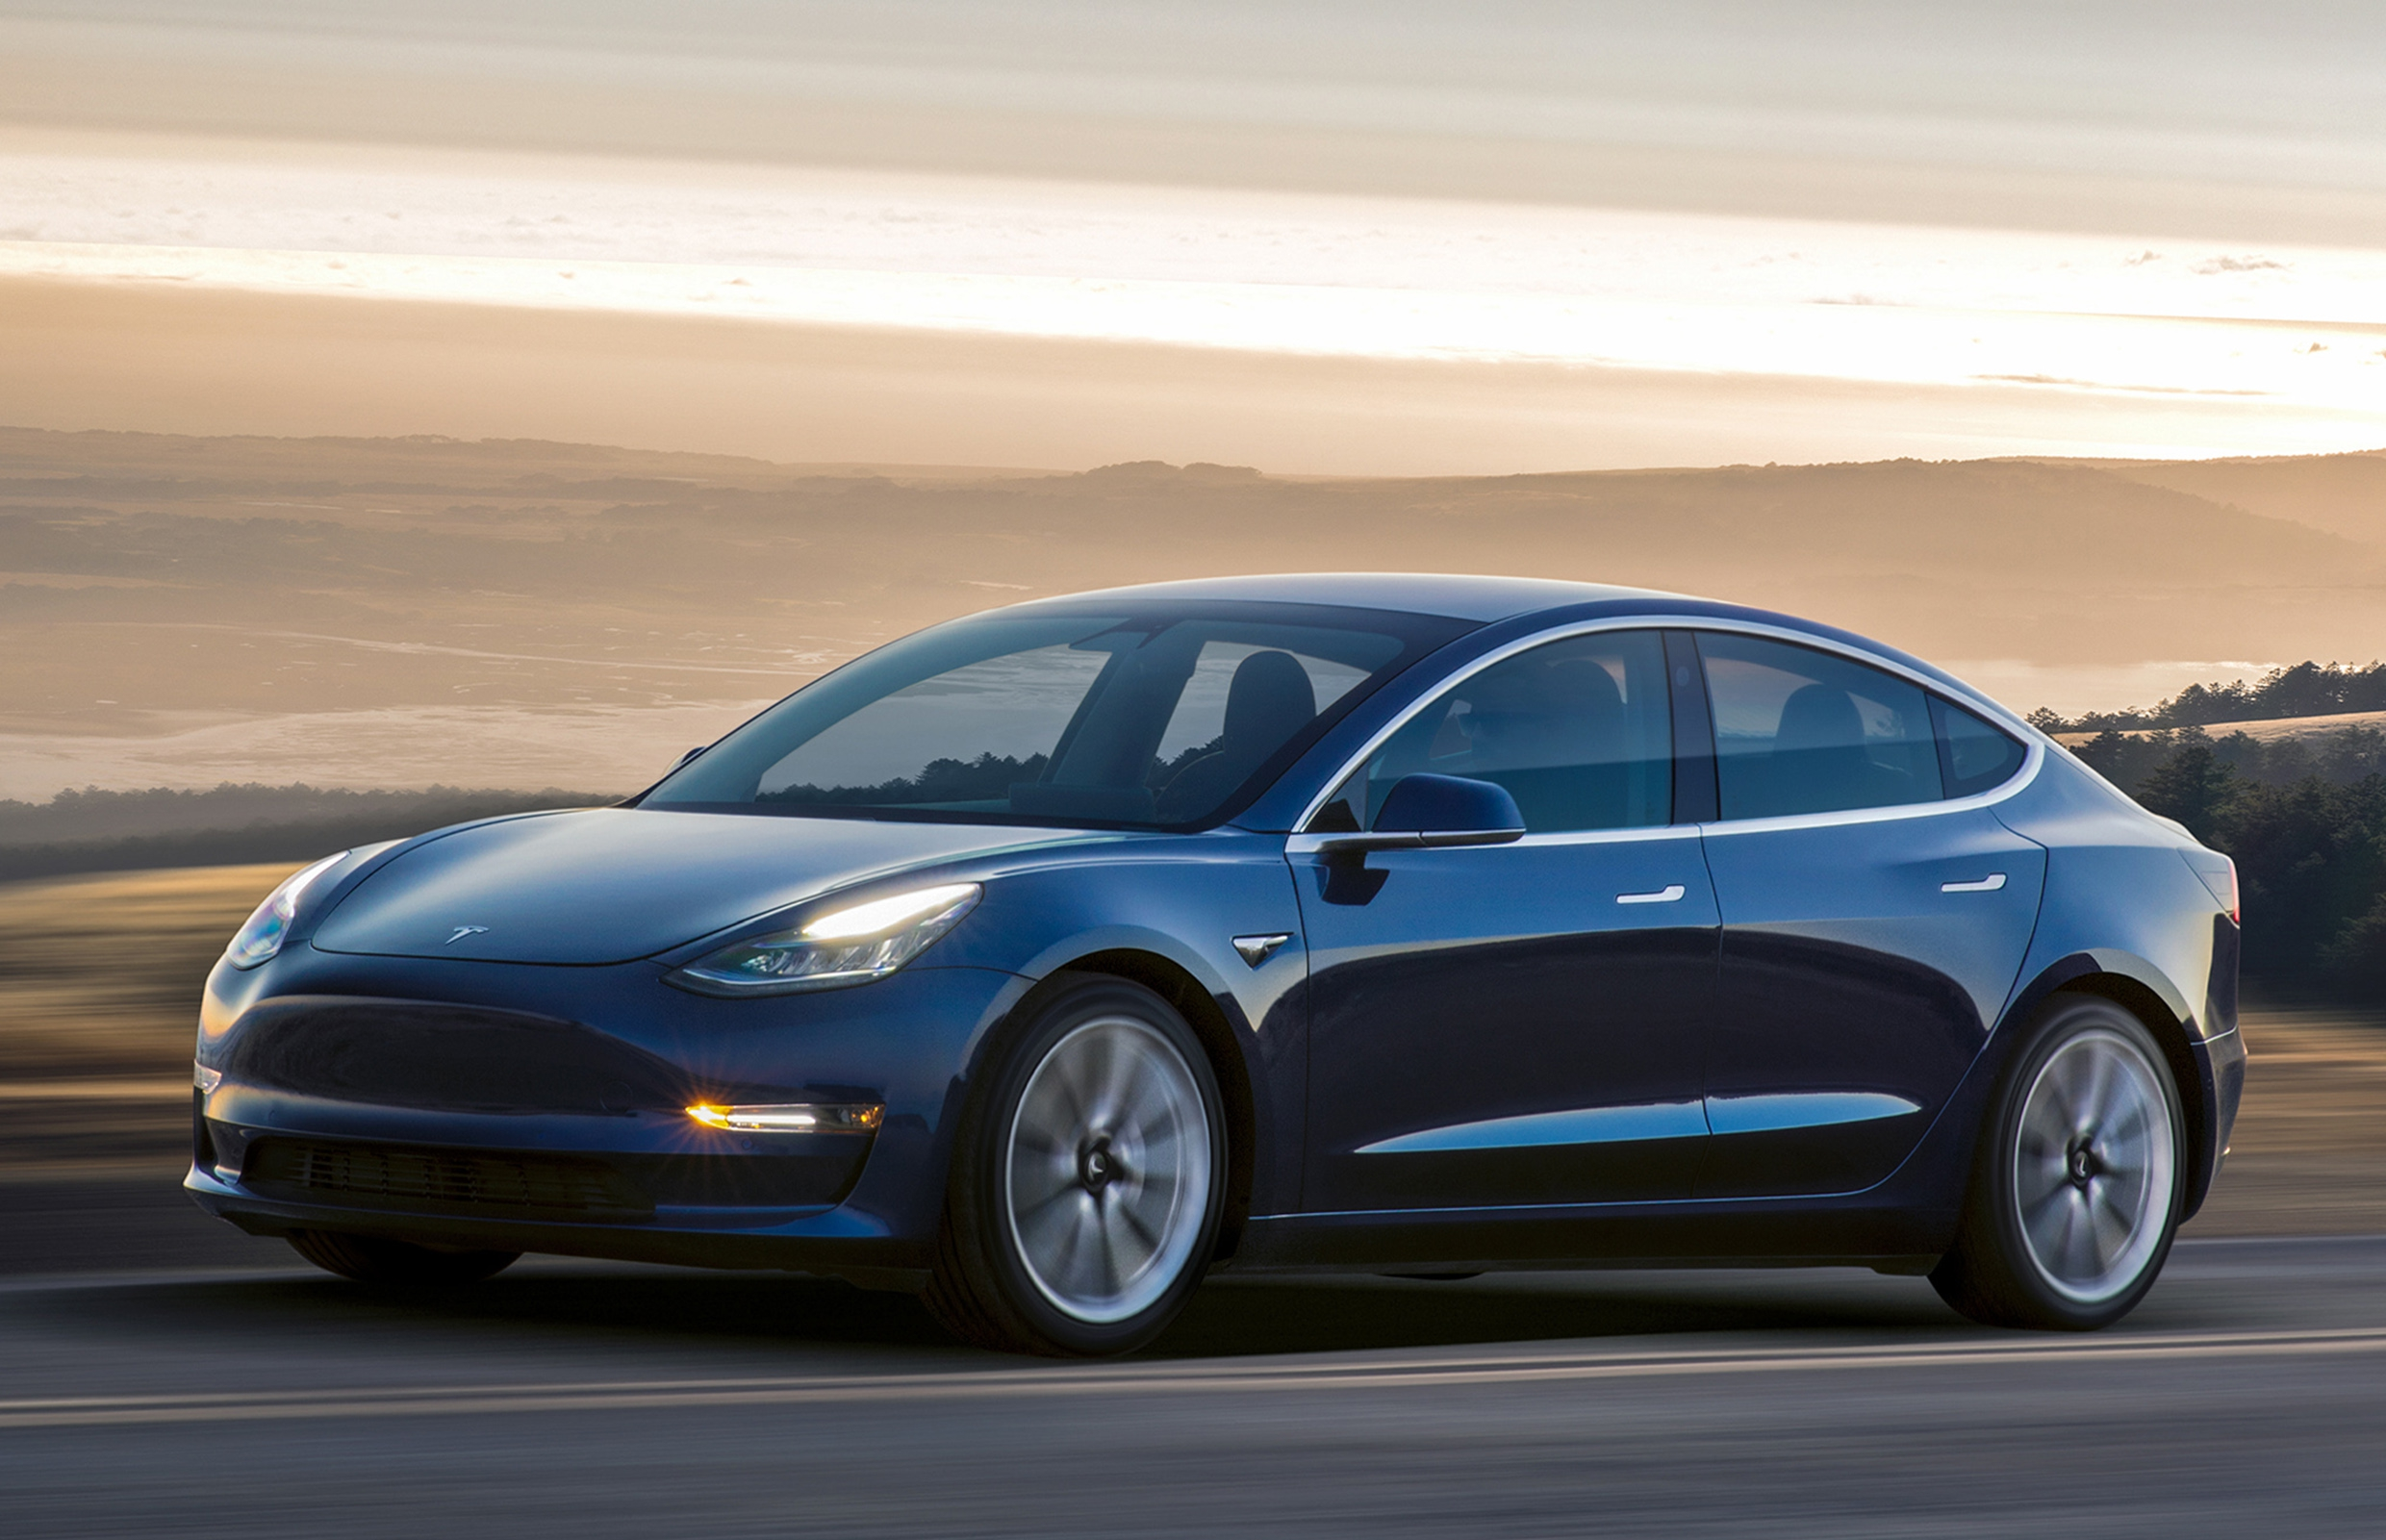 Buyer's Guide: Tesla Model 3